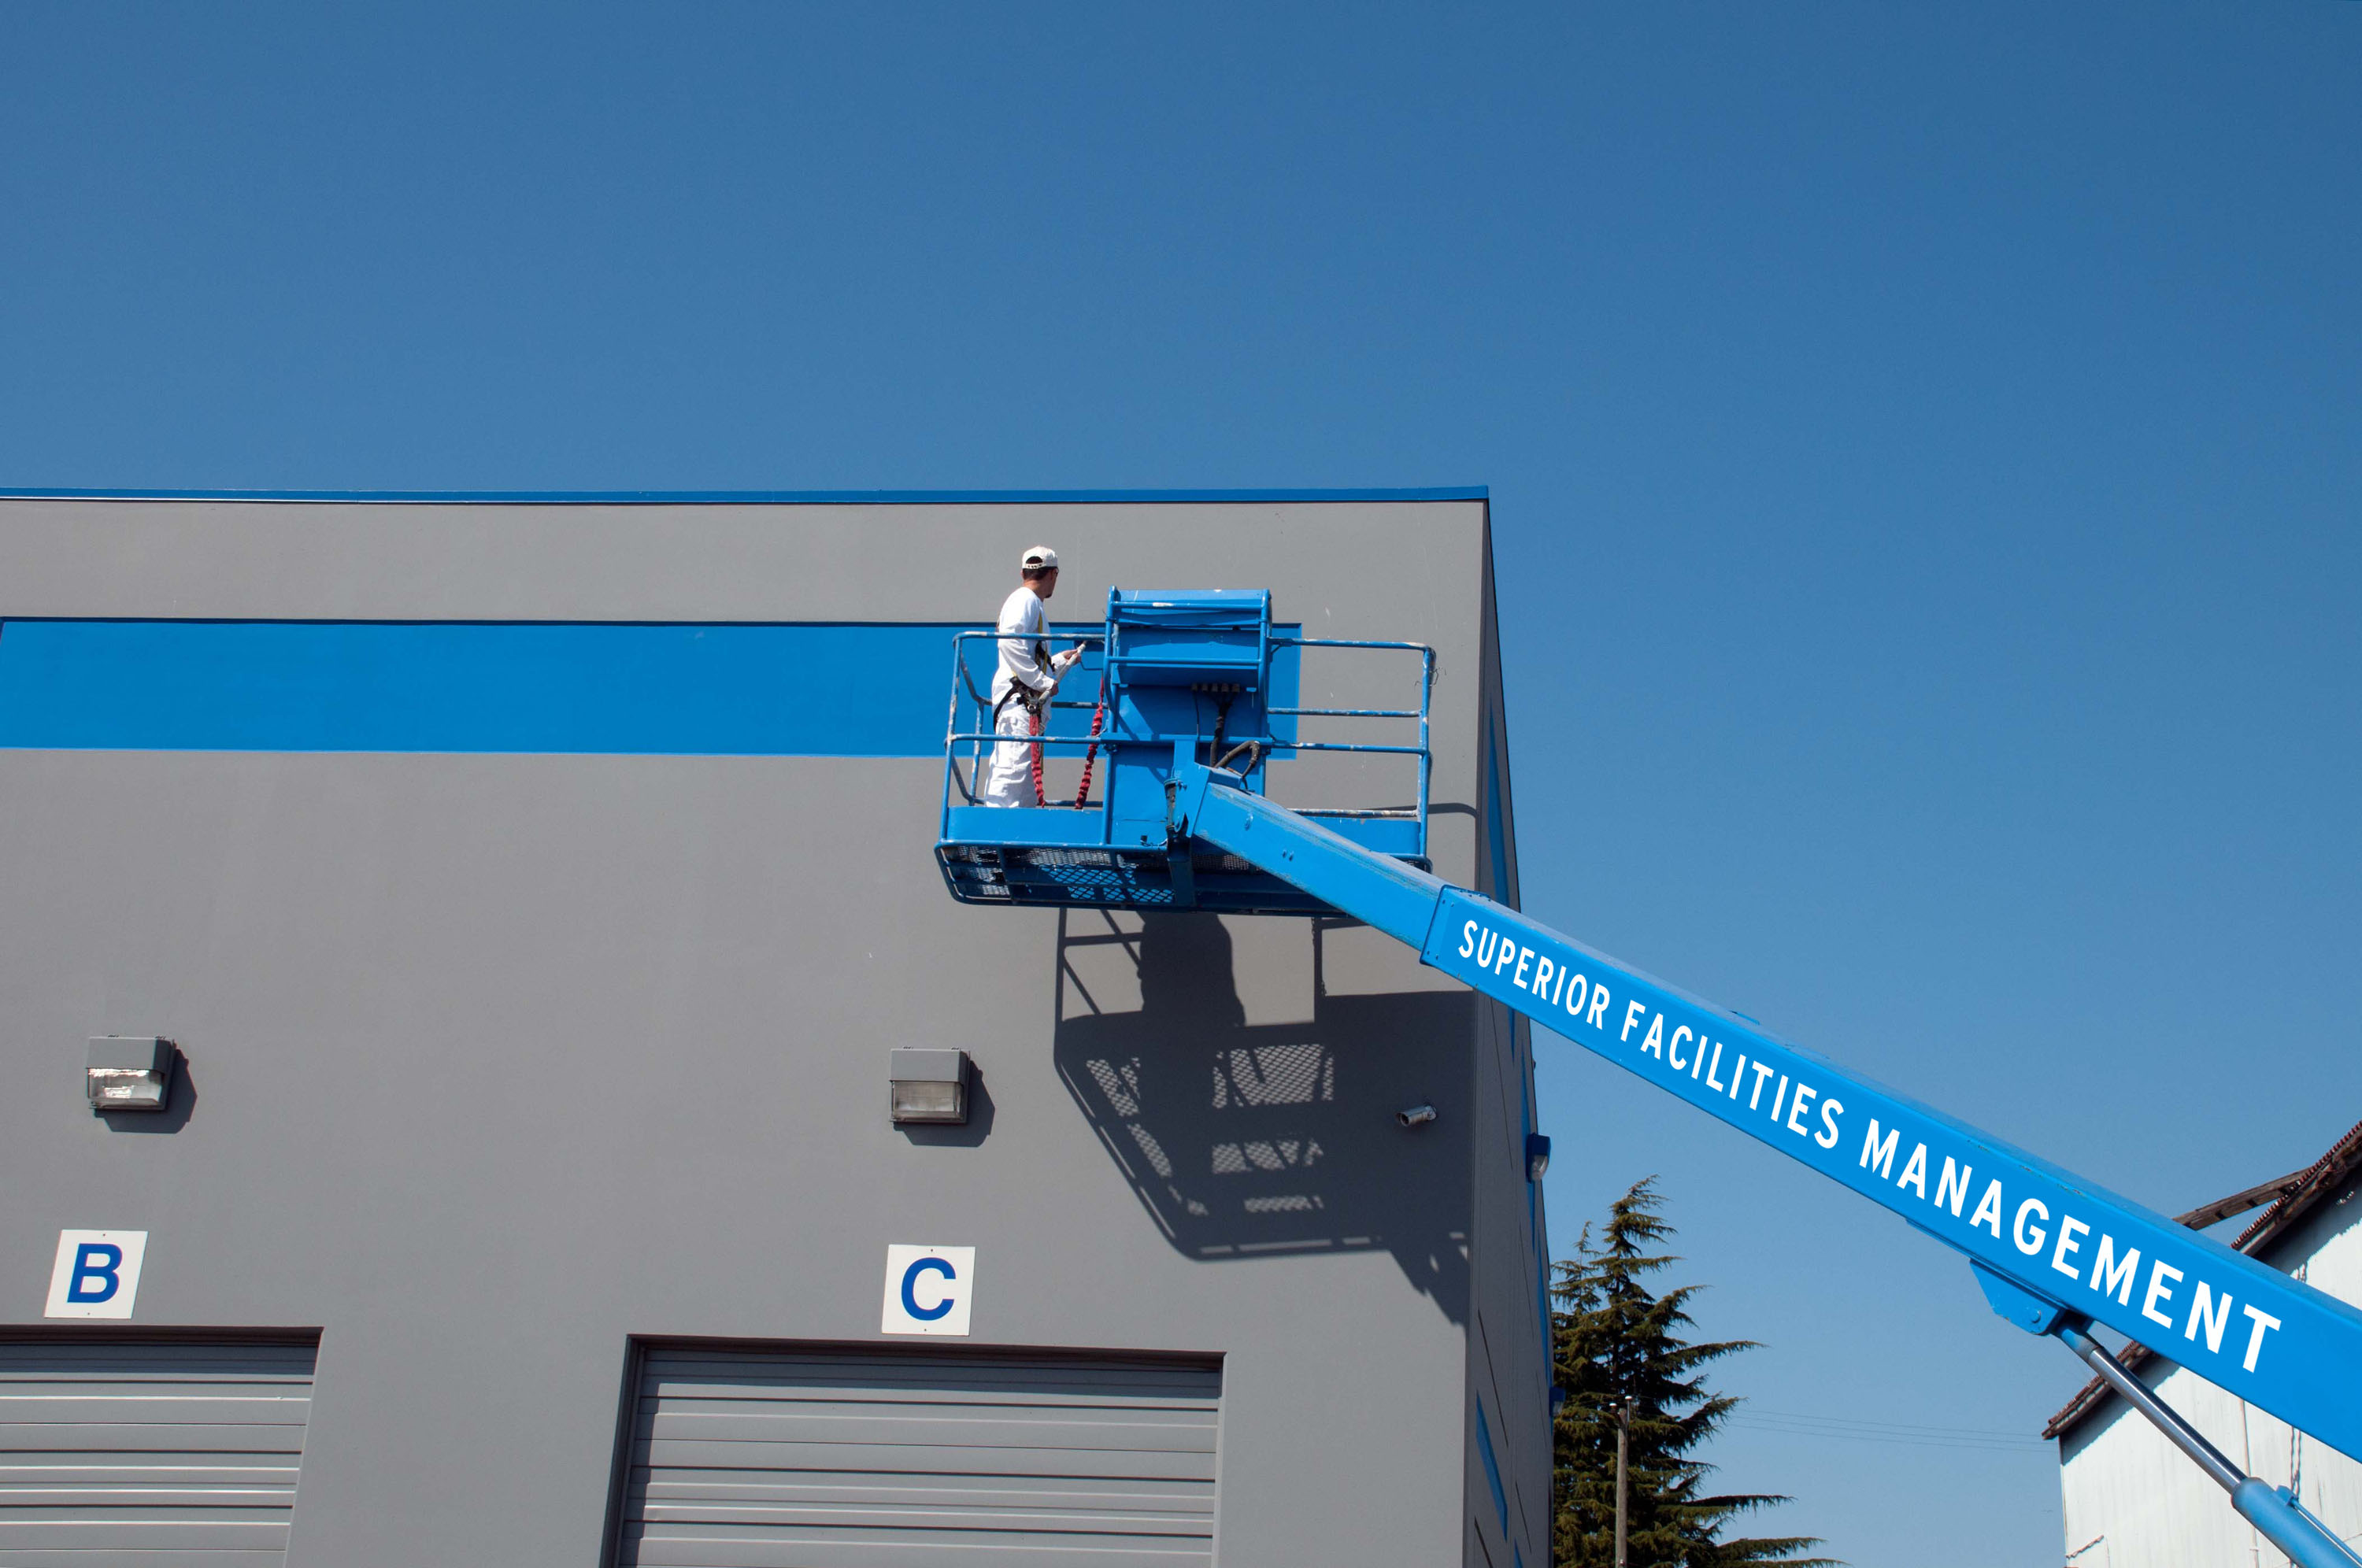 Painting - Exterior Building Service